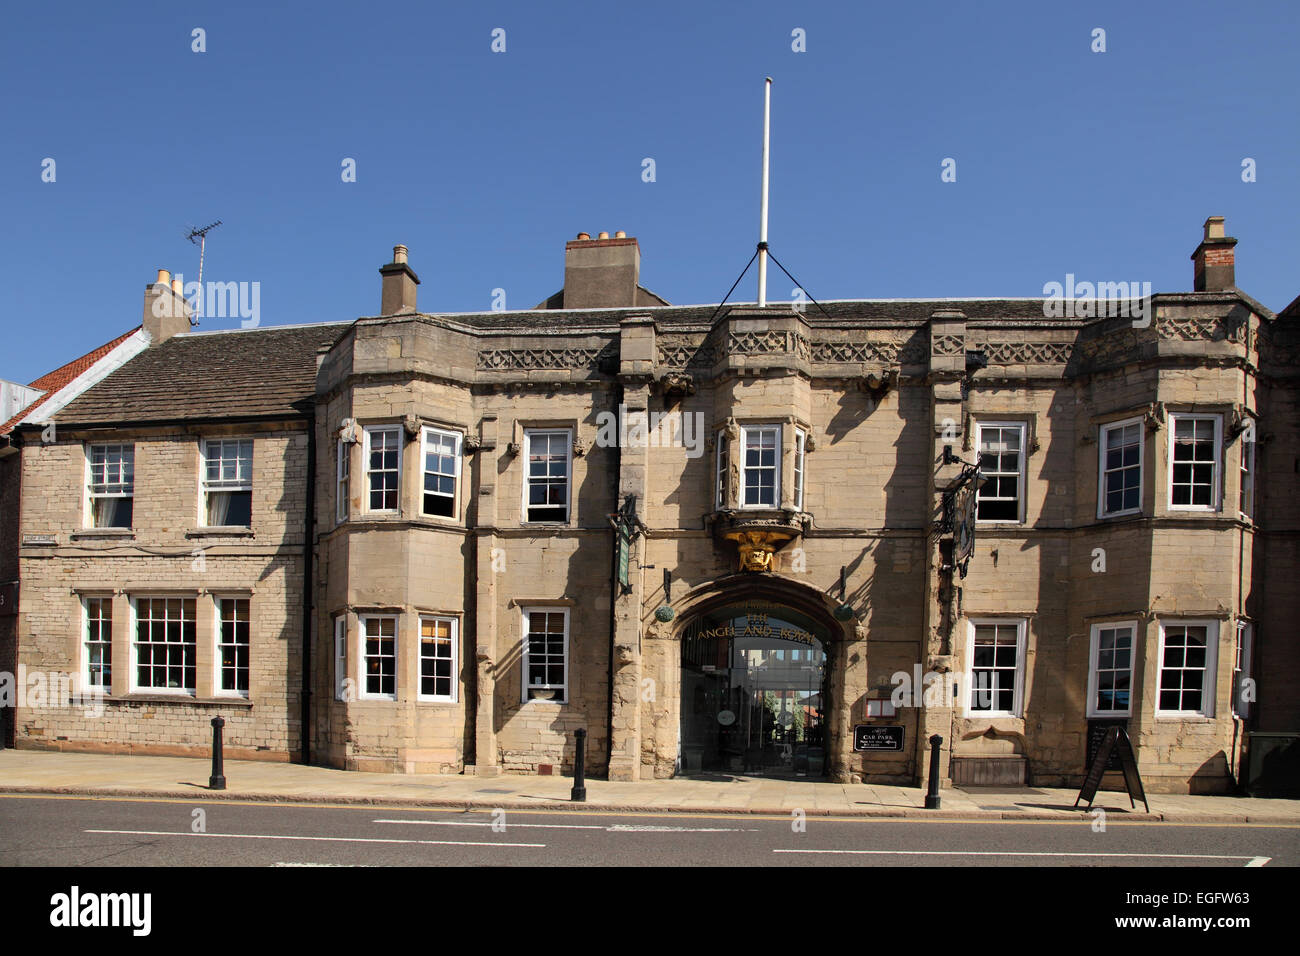 The Angel and Royal Hotel, Grantham, Lincolnshire - Stock Image